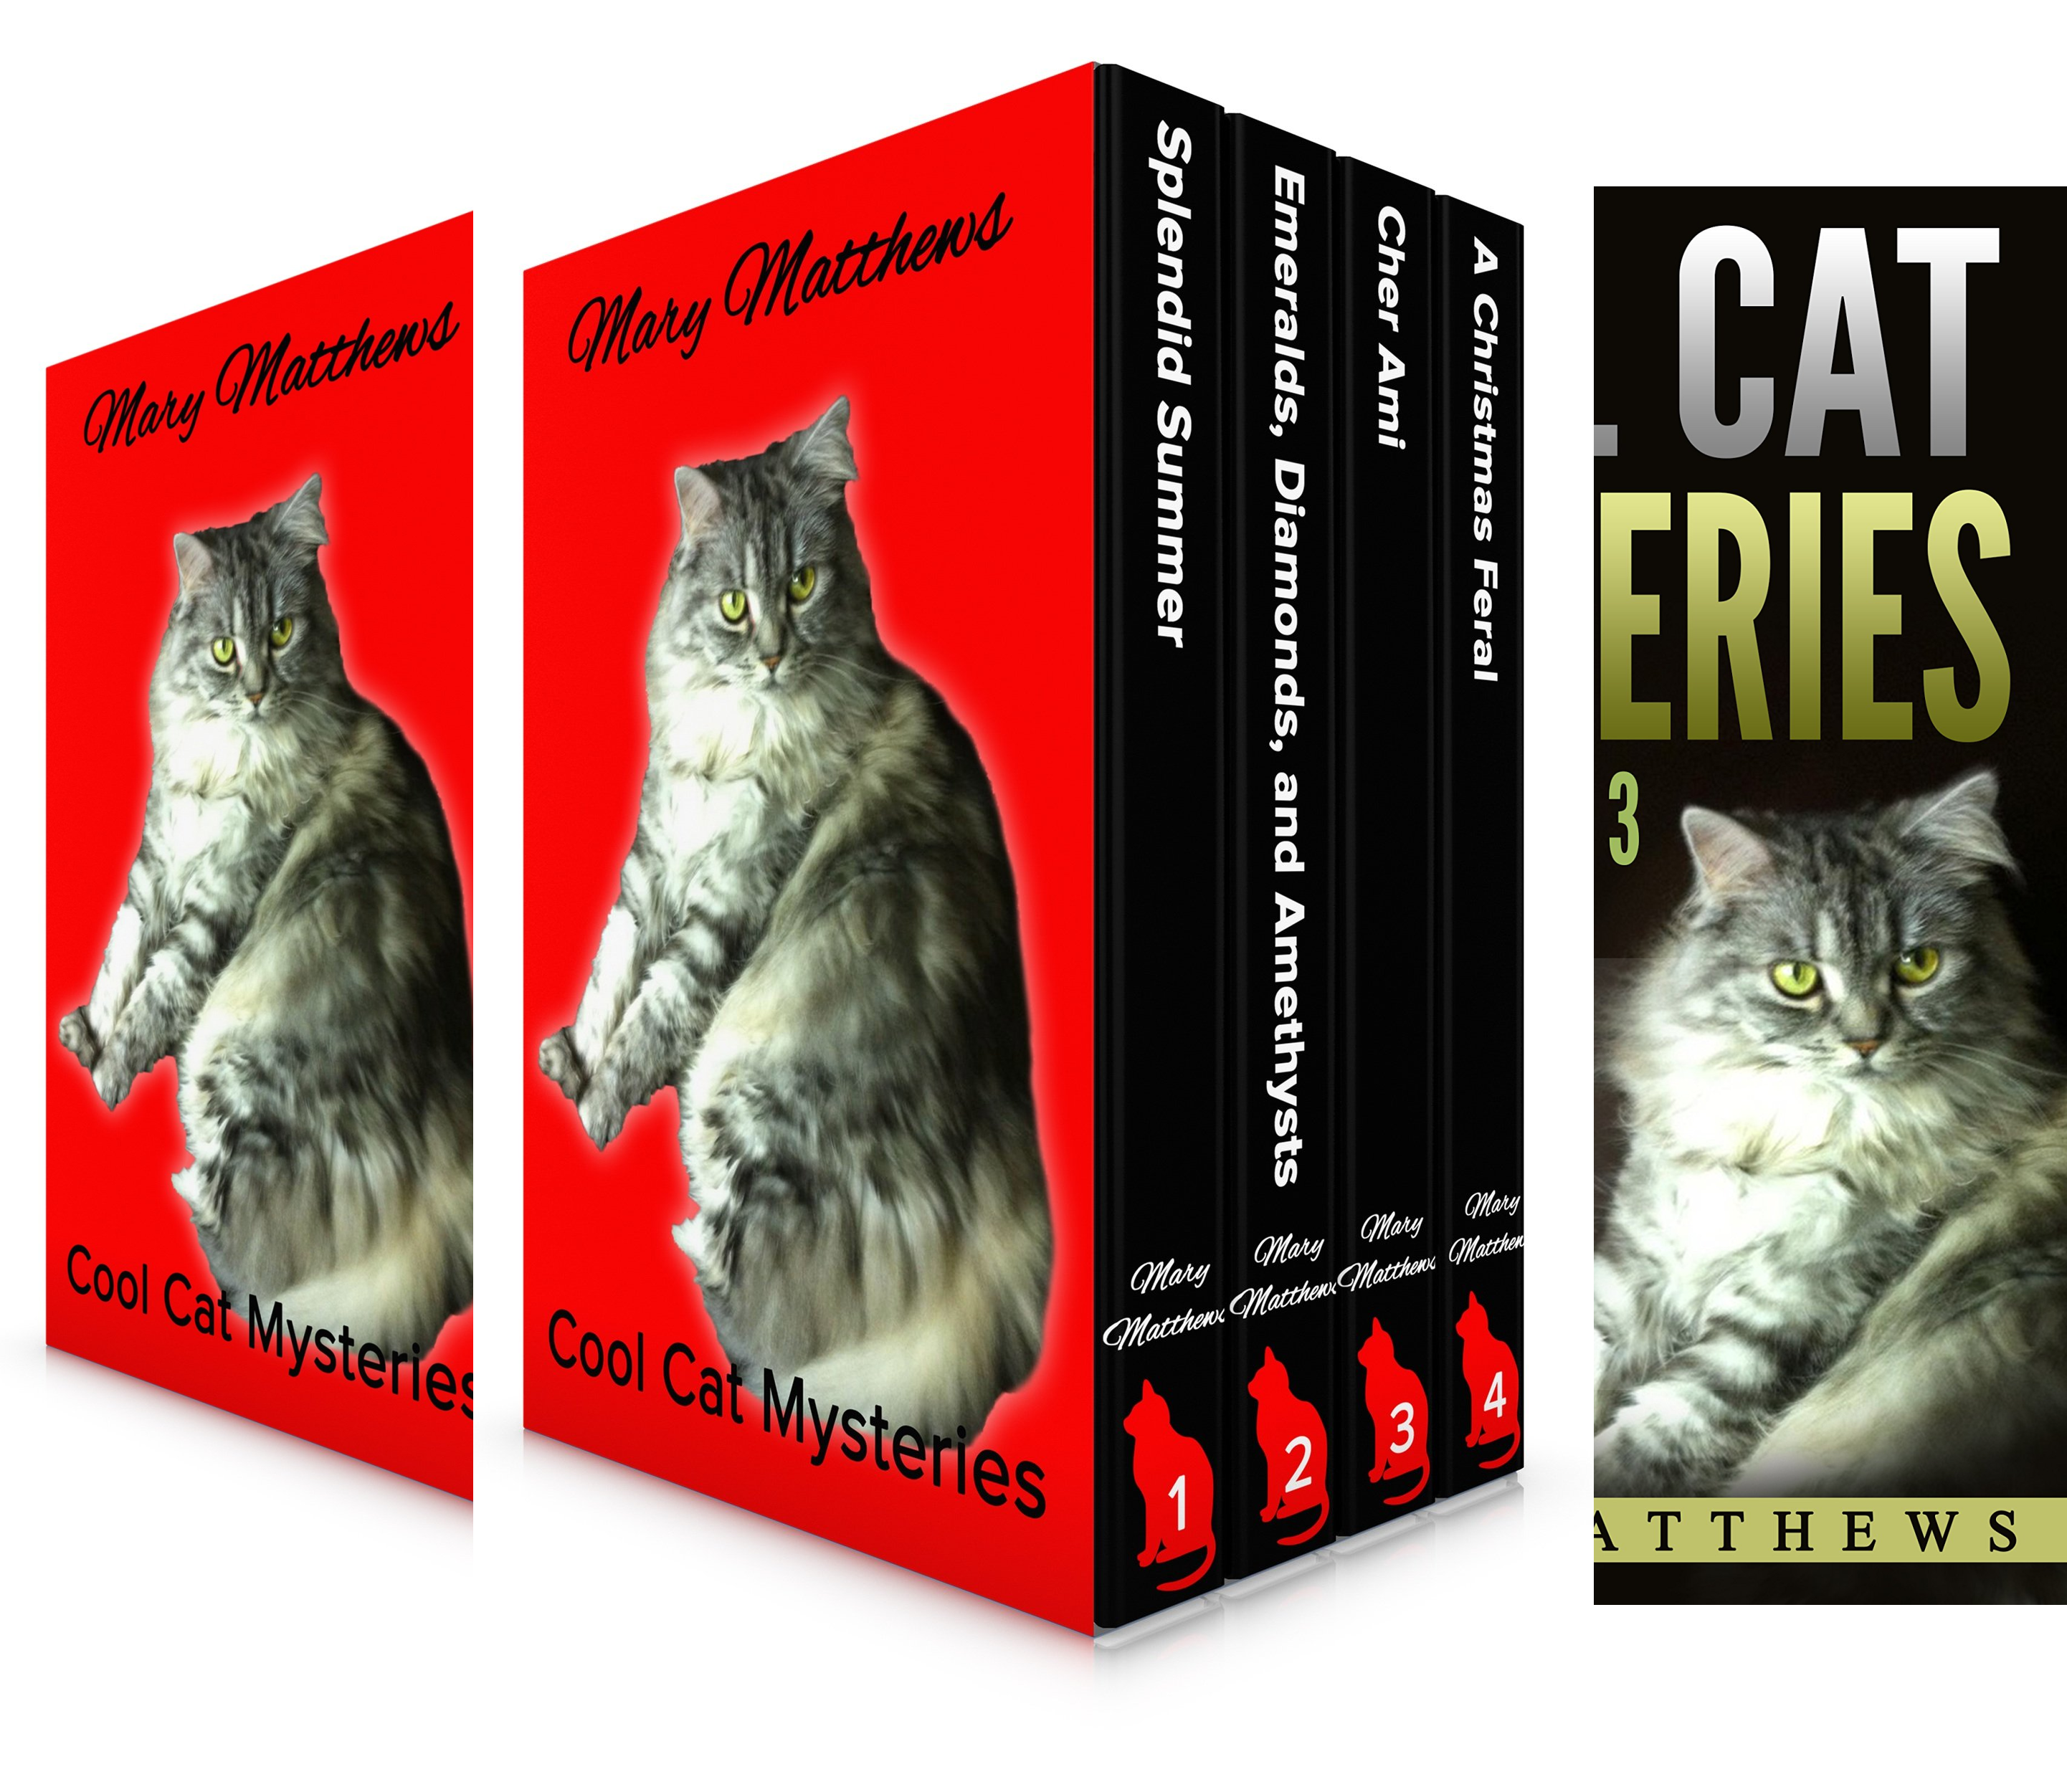 Magical Cool Cats Mysteries (3 Book Series)